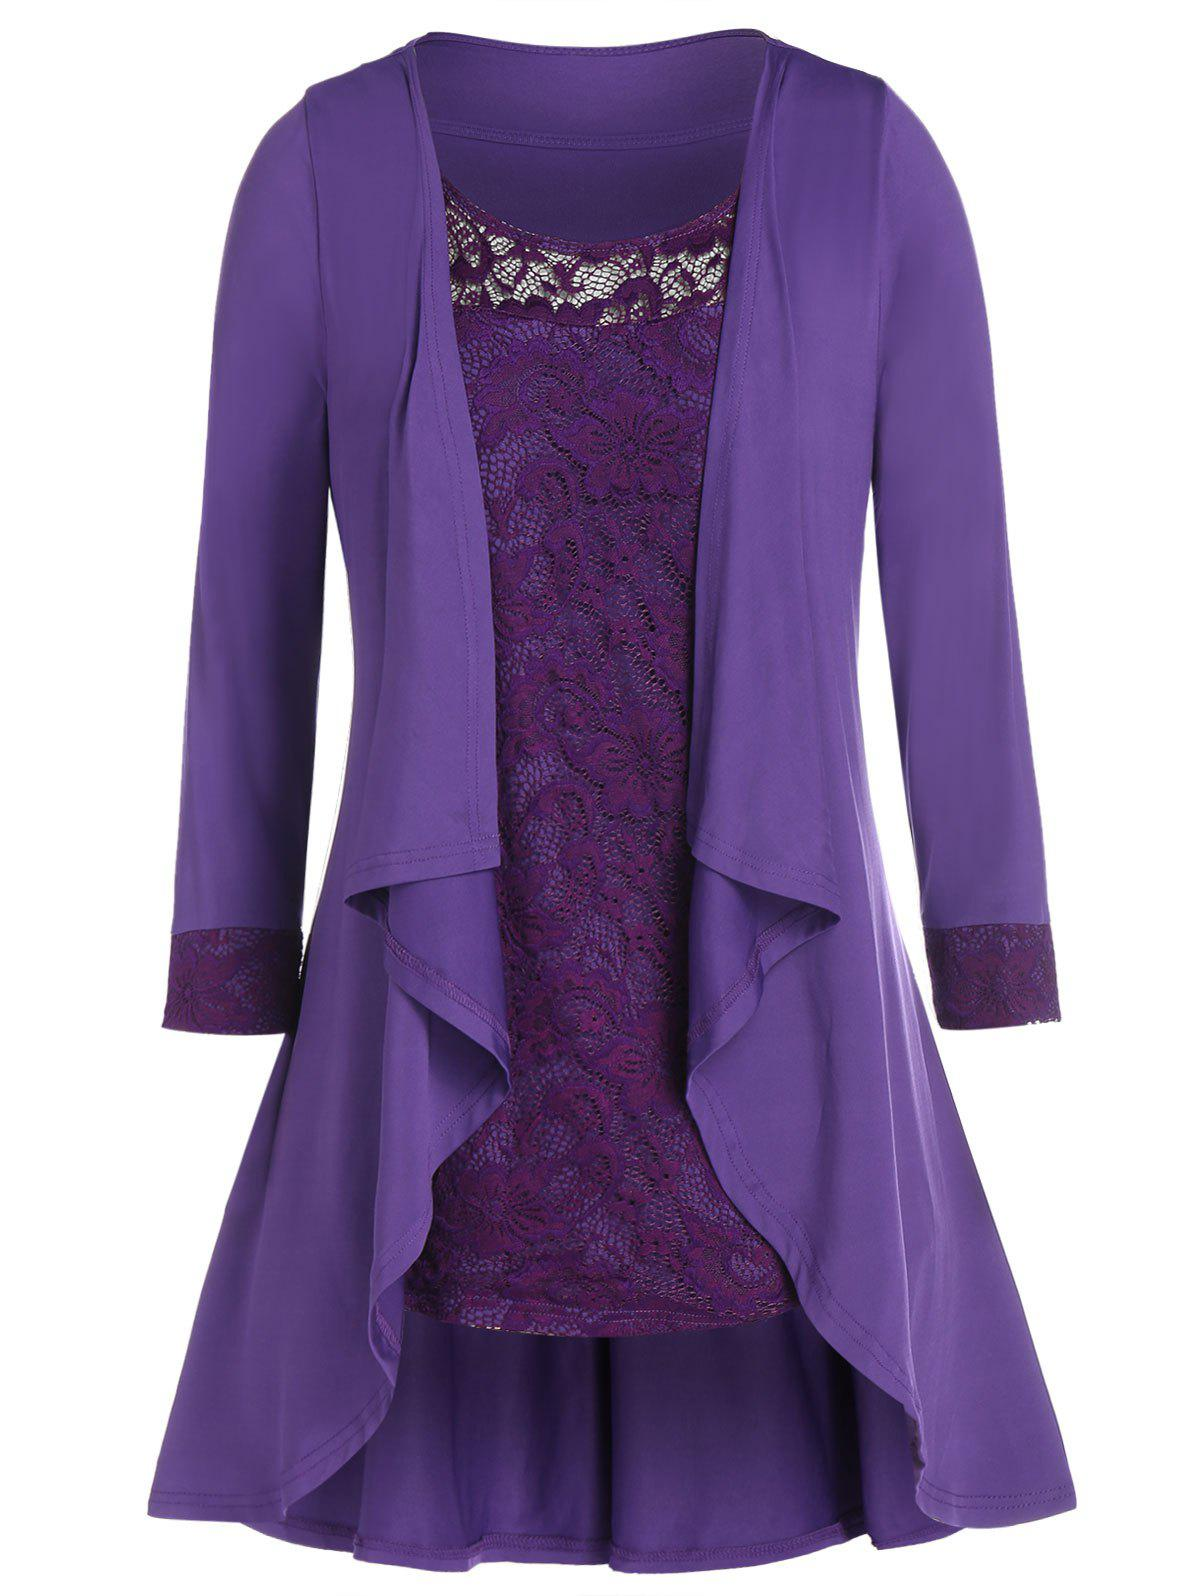 Plus Size Draped Top and Lace Tank Top Set - PURPLE AMETHYST L